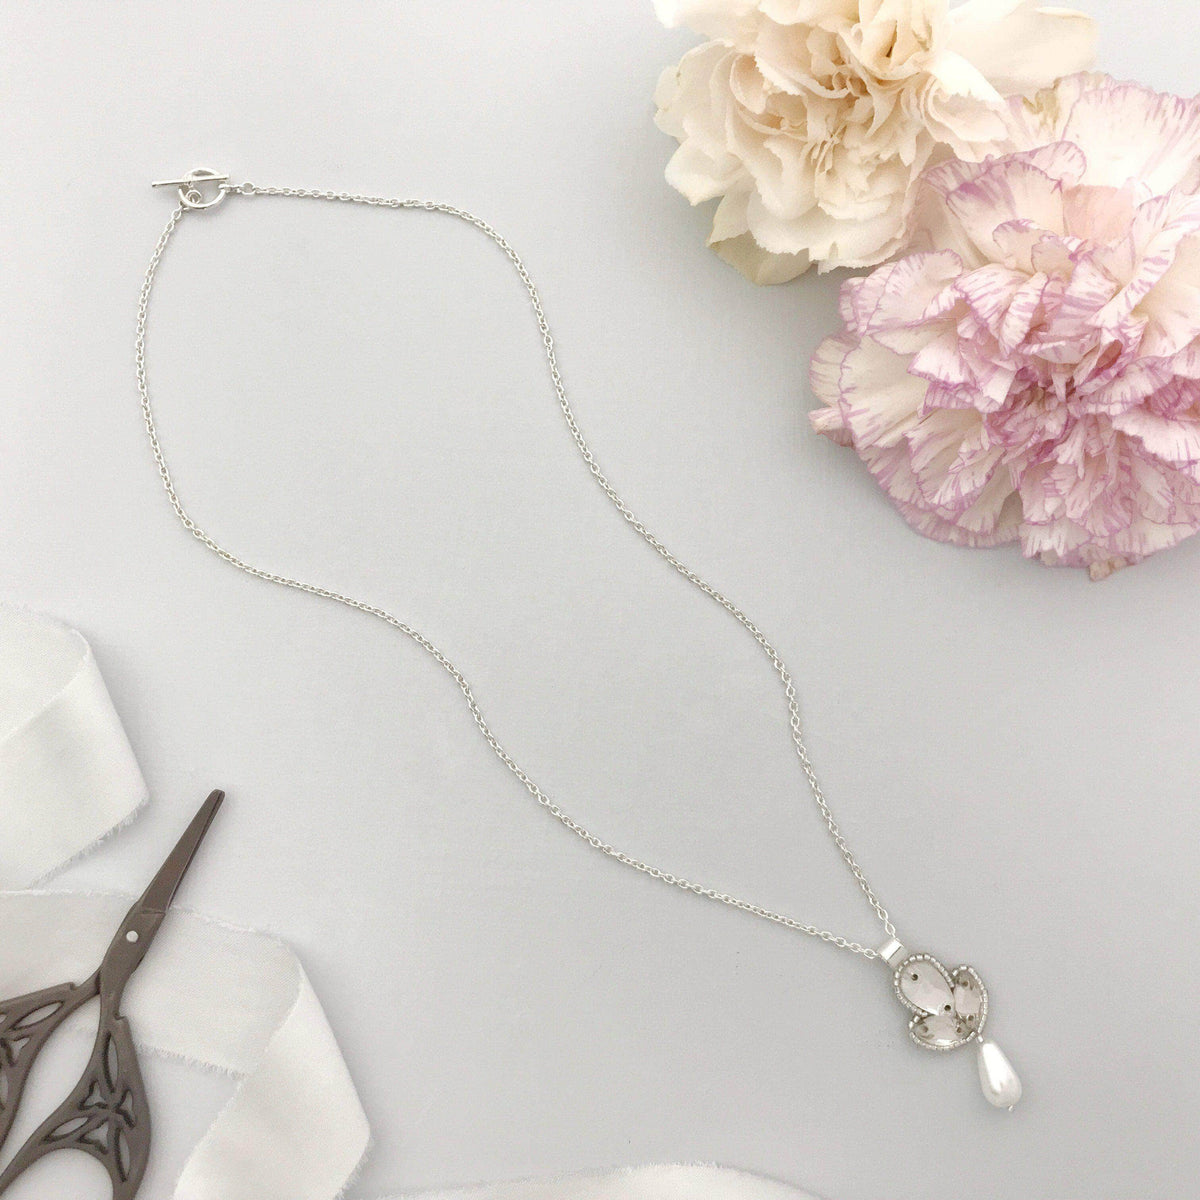 Wedding Necklace Silver Pearl drop wedding necklace - 'Bel'